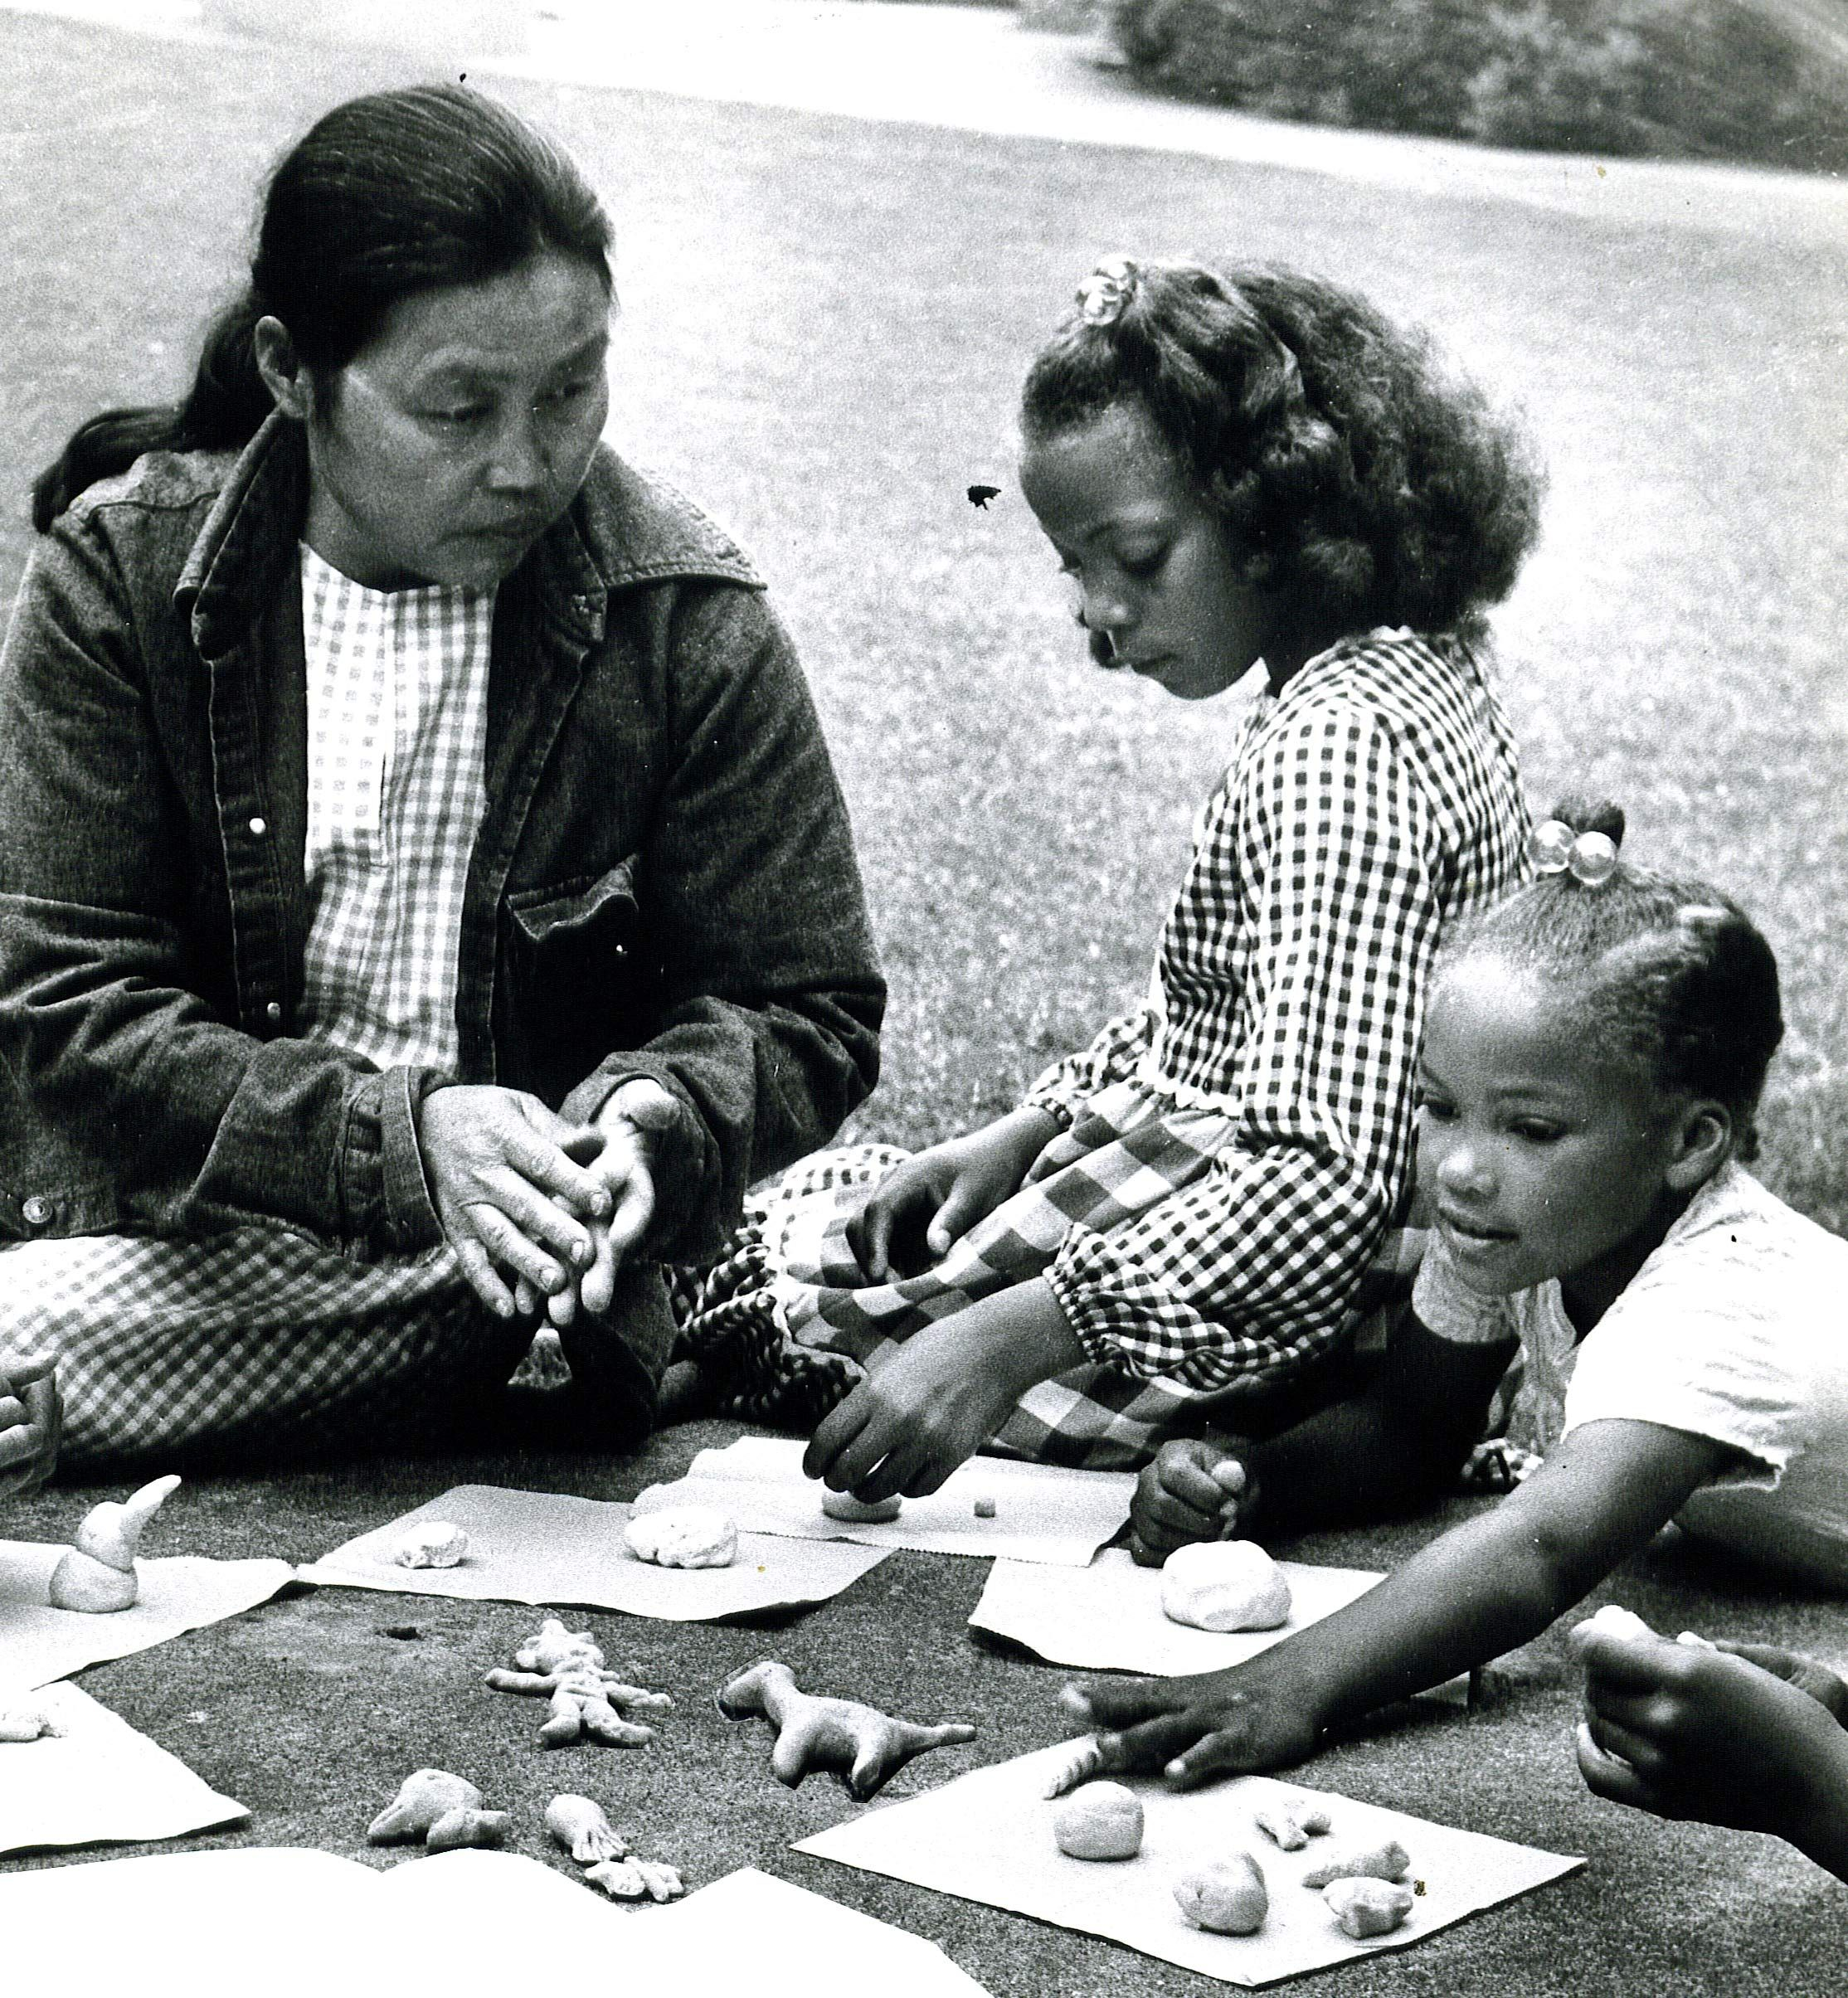 RIP Local sculptor Ruth Asawa, pictured here leading a special children's art project in 1975 to commemorate Children's Fairyland 25th anniversary.